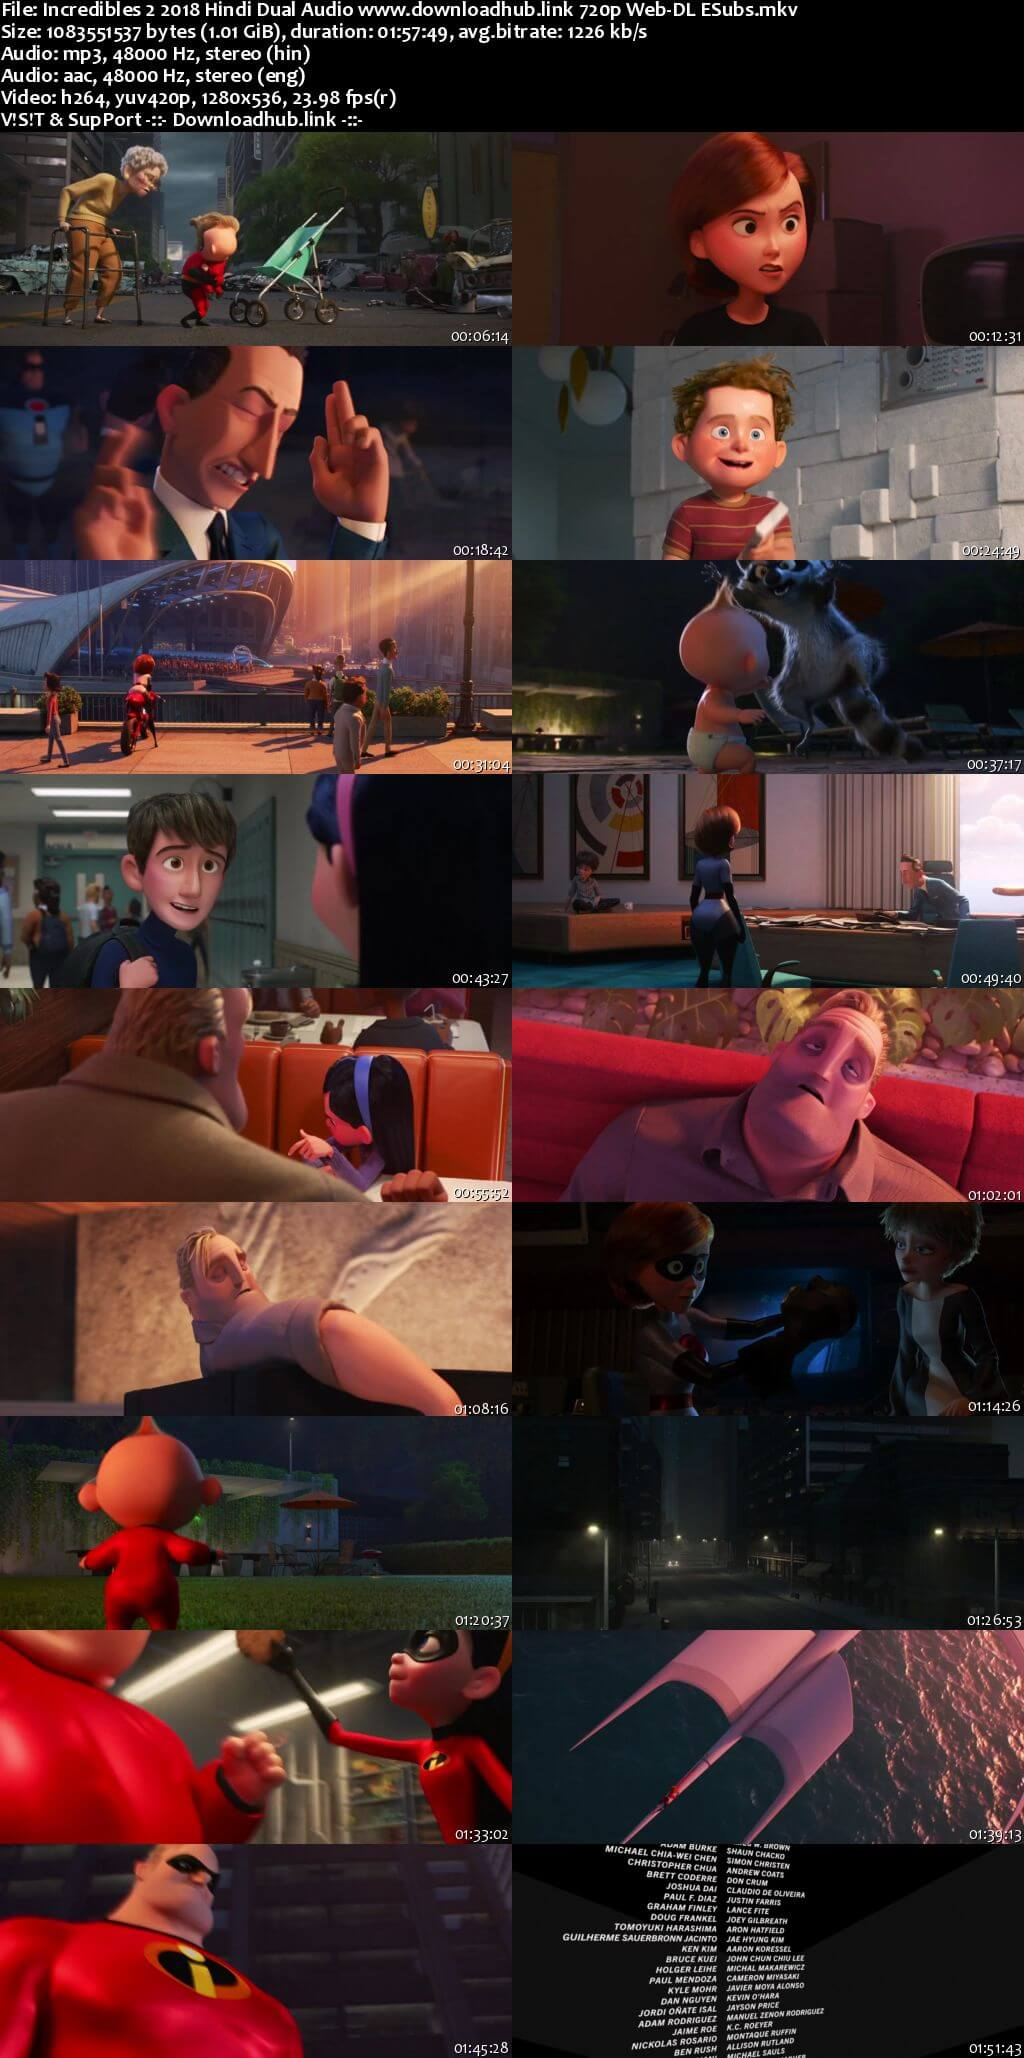 Incredibles 2 2018 Hindi Dual Audio 720p Web-DL ESubs